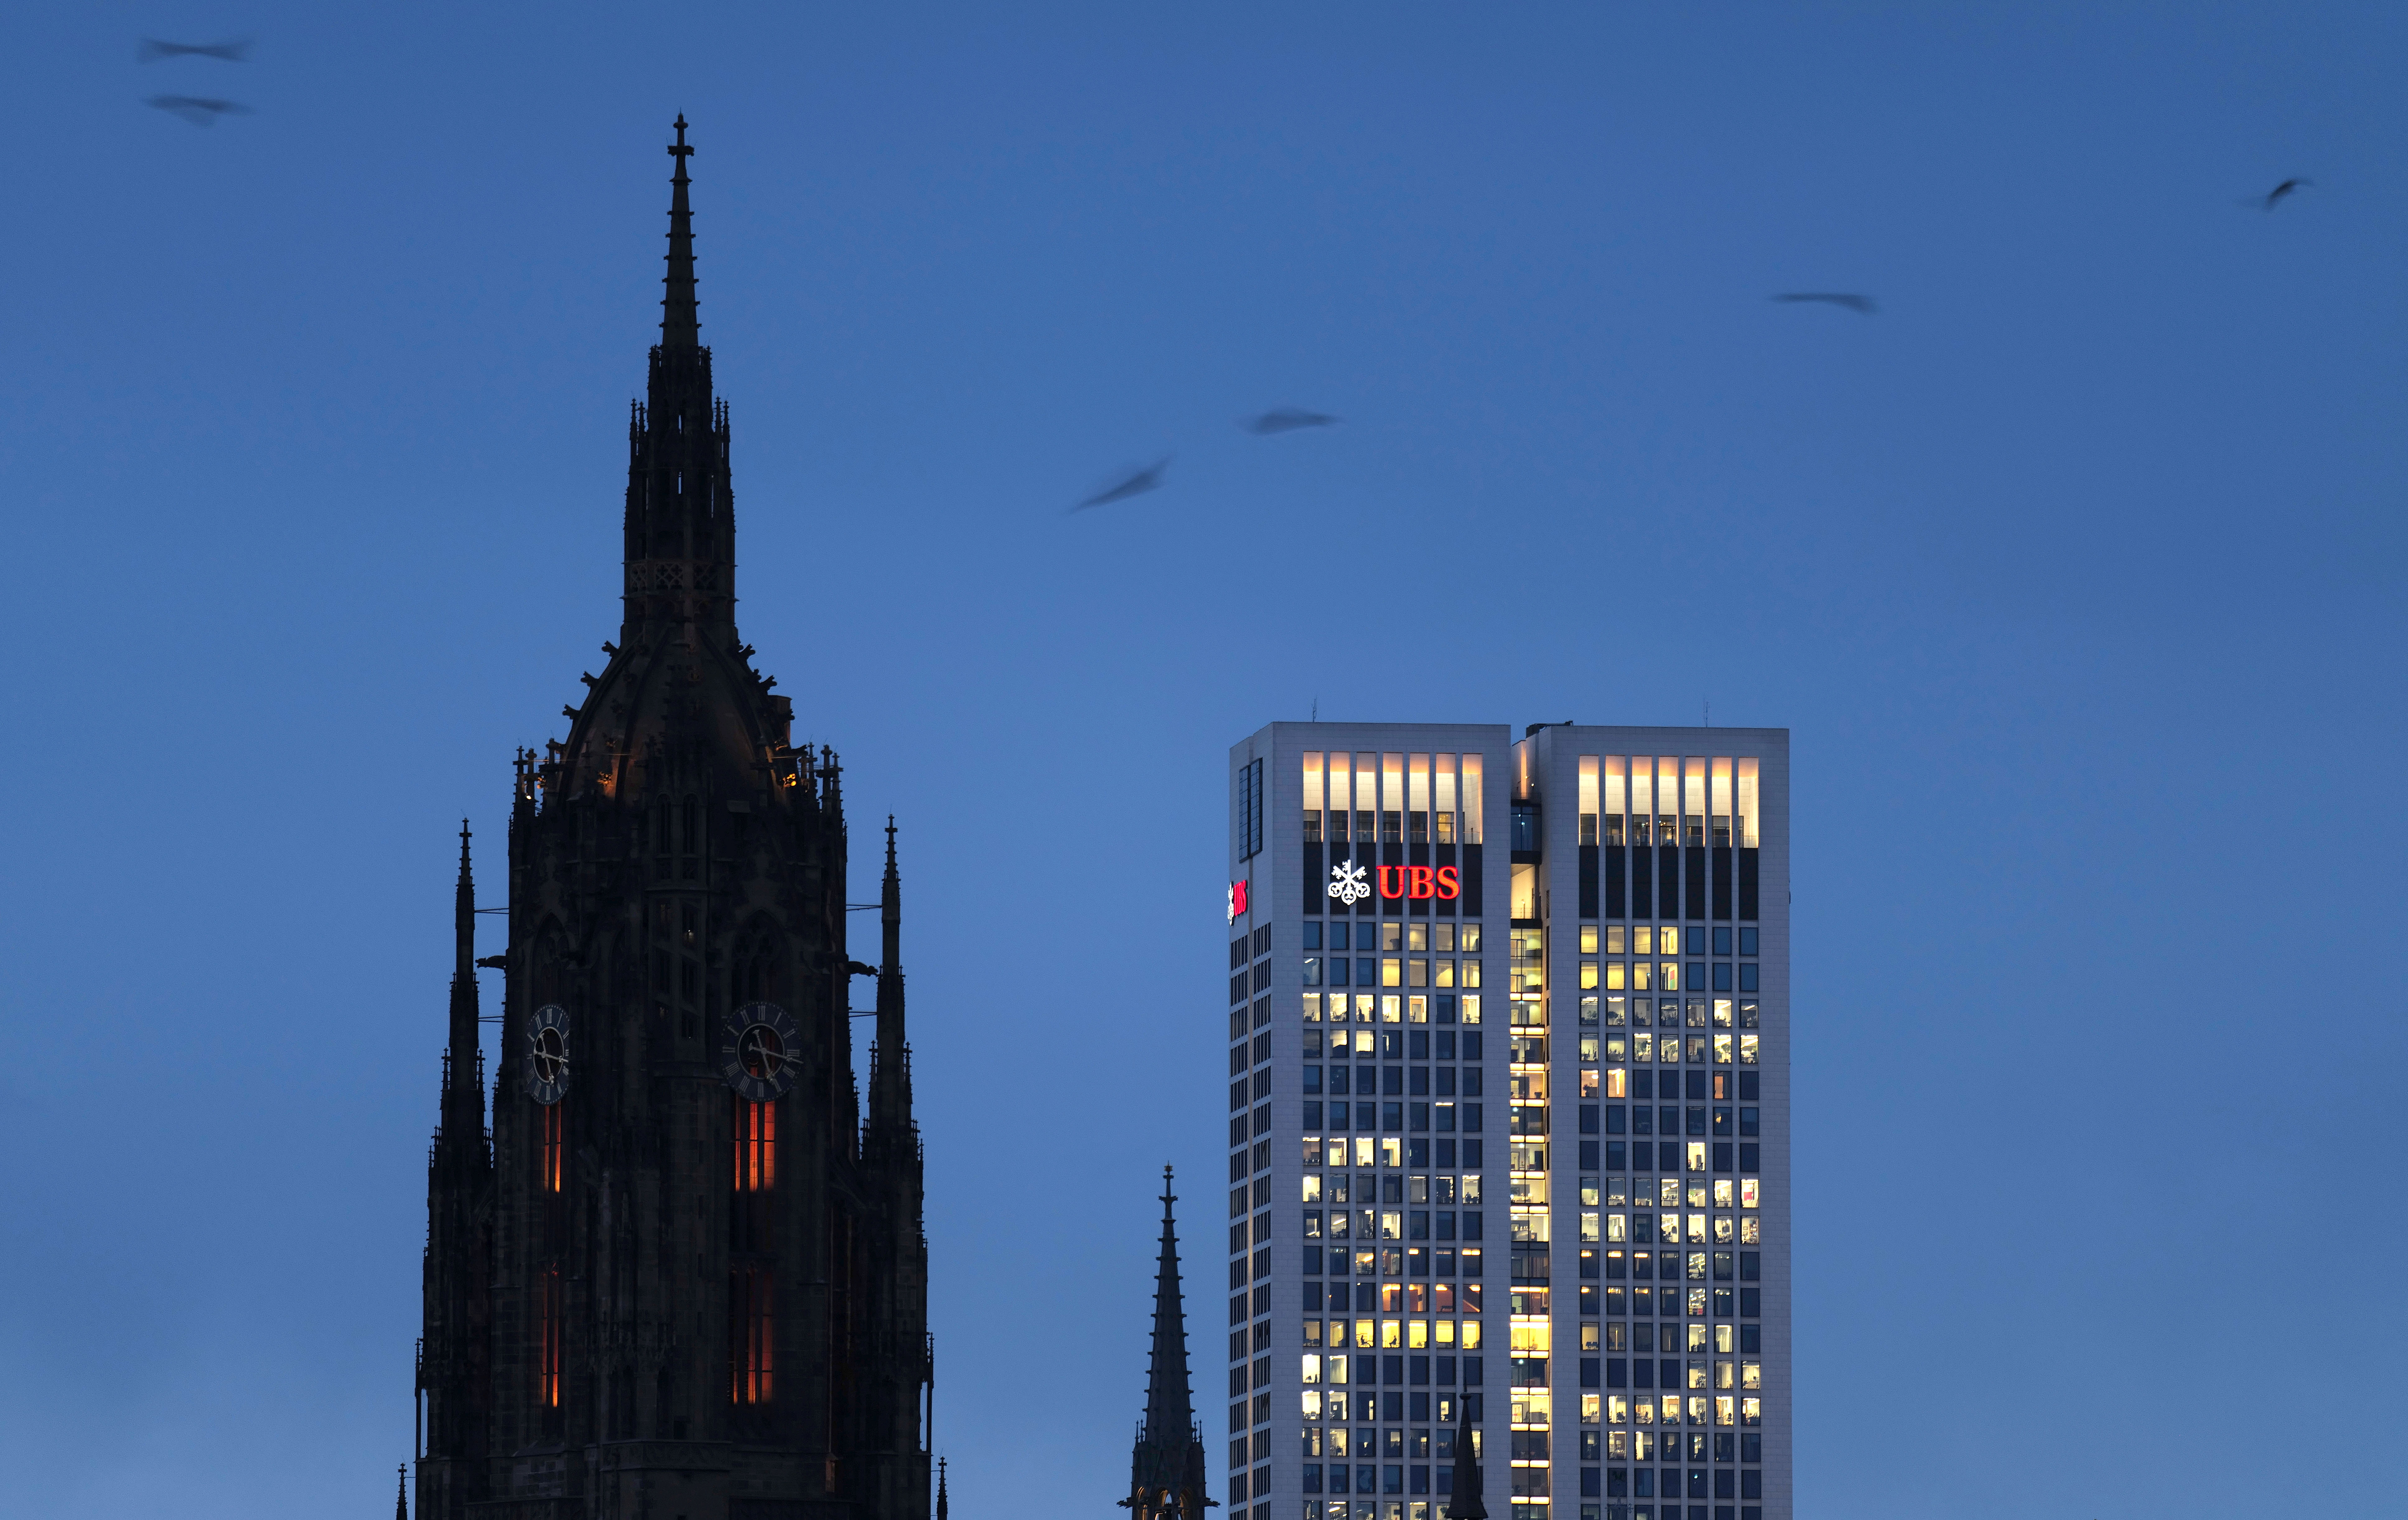 Illuminated offices of the UBS Swiss bank are pictured next to a cathedral during an extended lockdown, as the spread of the coronavirus disease (COVID-19) continues in Frankfurt, Germany, January 21, 2021.  REUTERS/Kai Pfaffenbach - RC2ICL9610BN